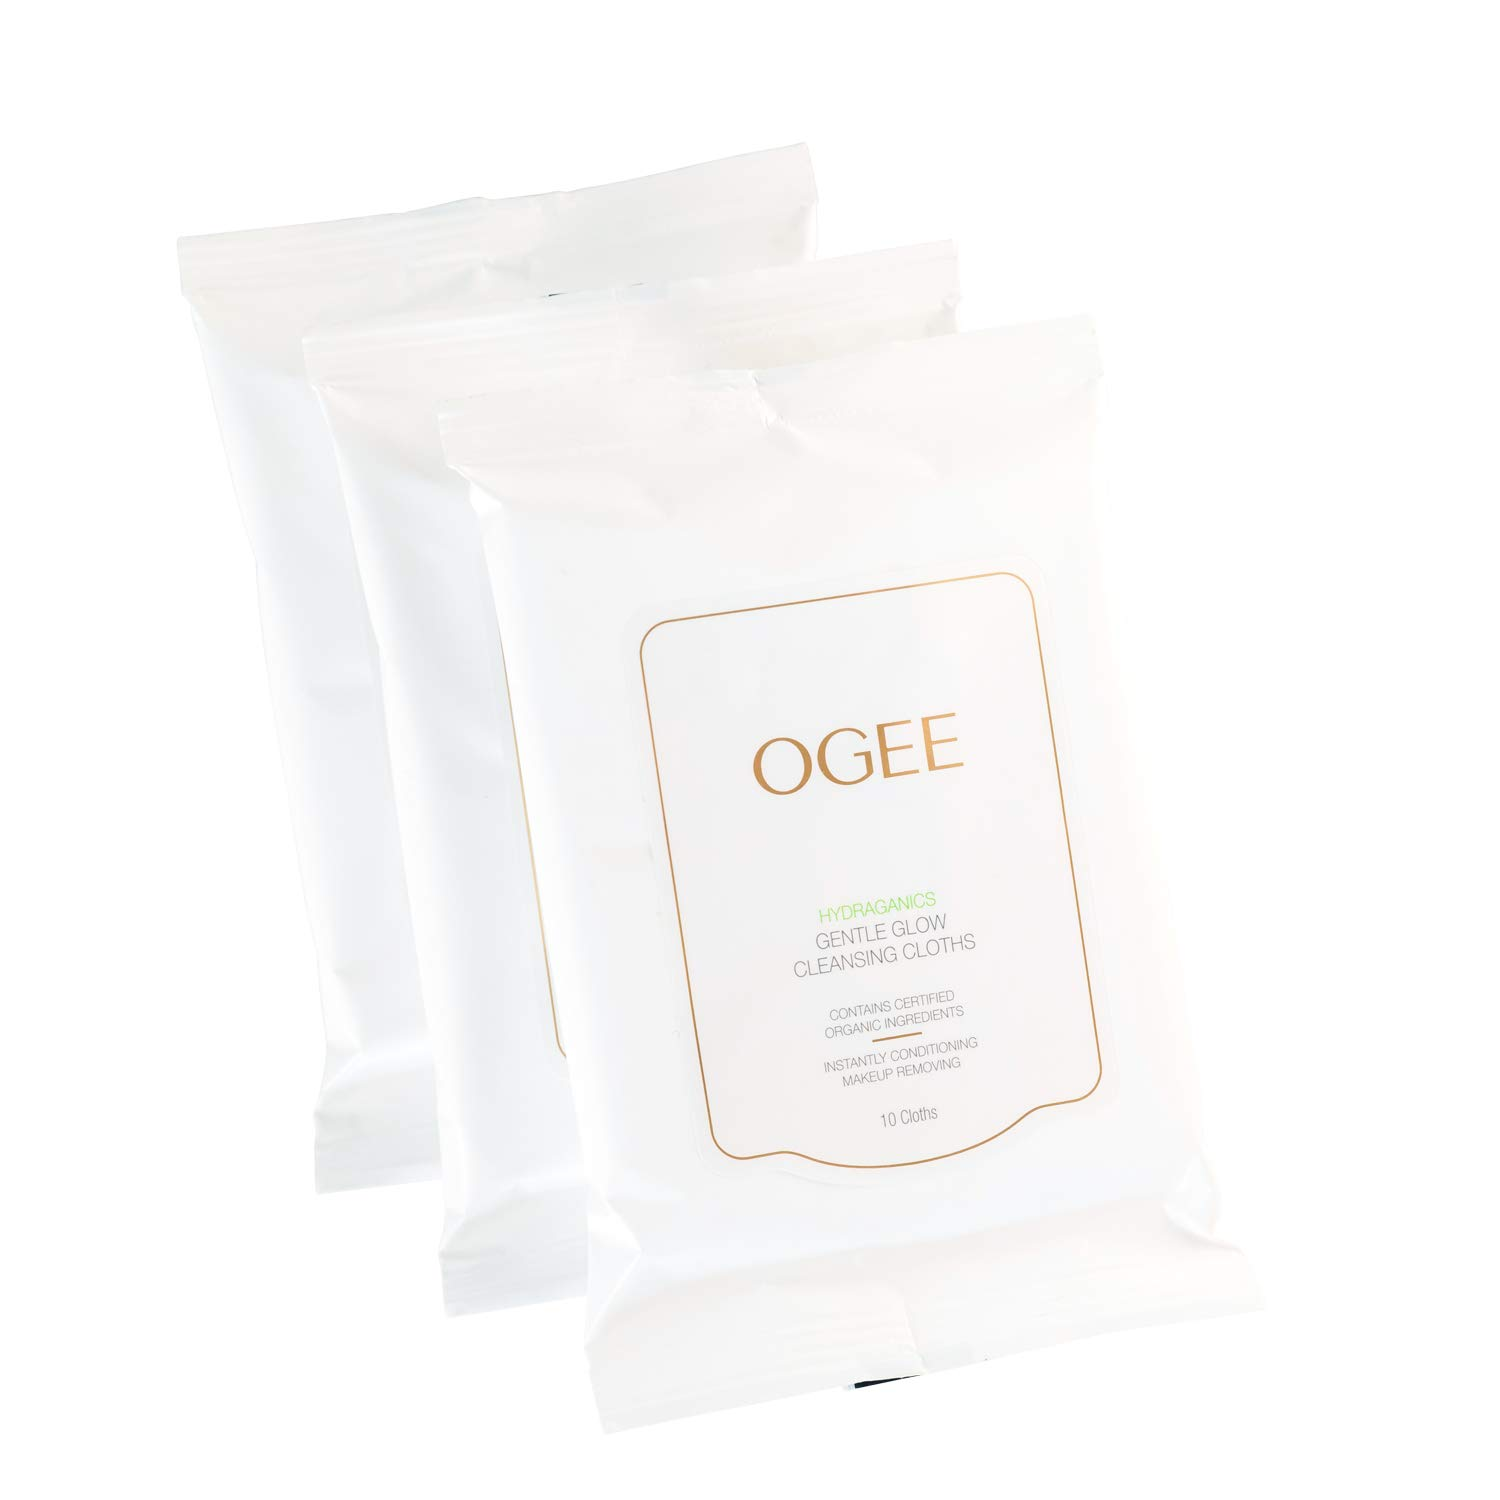 Ogee Gentle Glow Facial Cleansing Cloths - Organic & Natural Make-Up Removing Moisturizing Face Wipes with Jojoba Seed Oil - 30 Wet Cloths (3 Packs of 10)